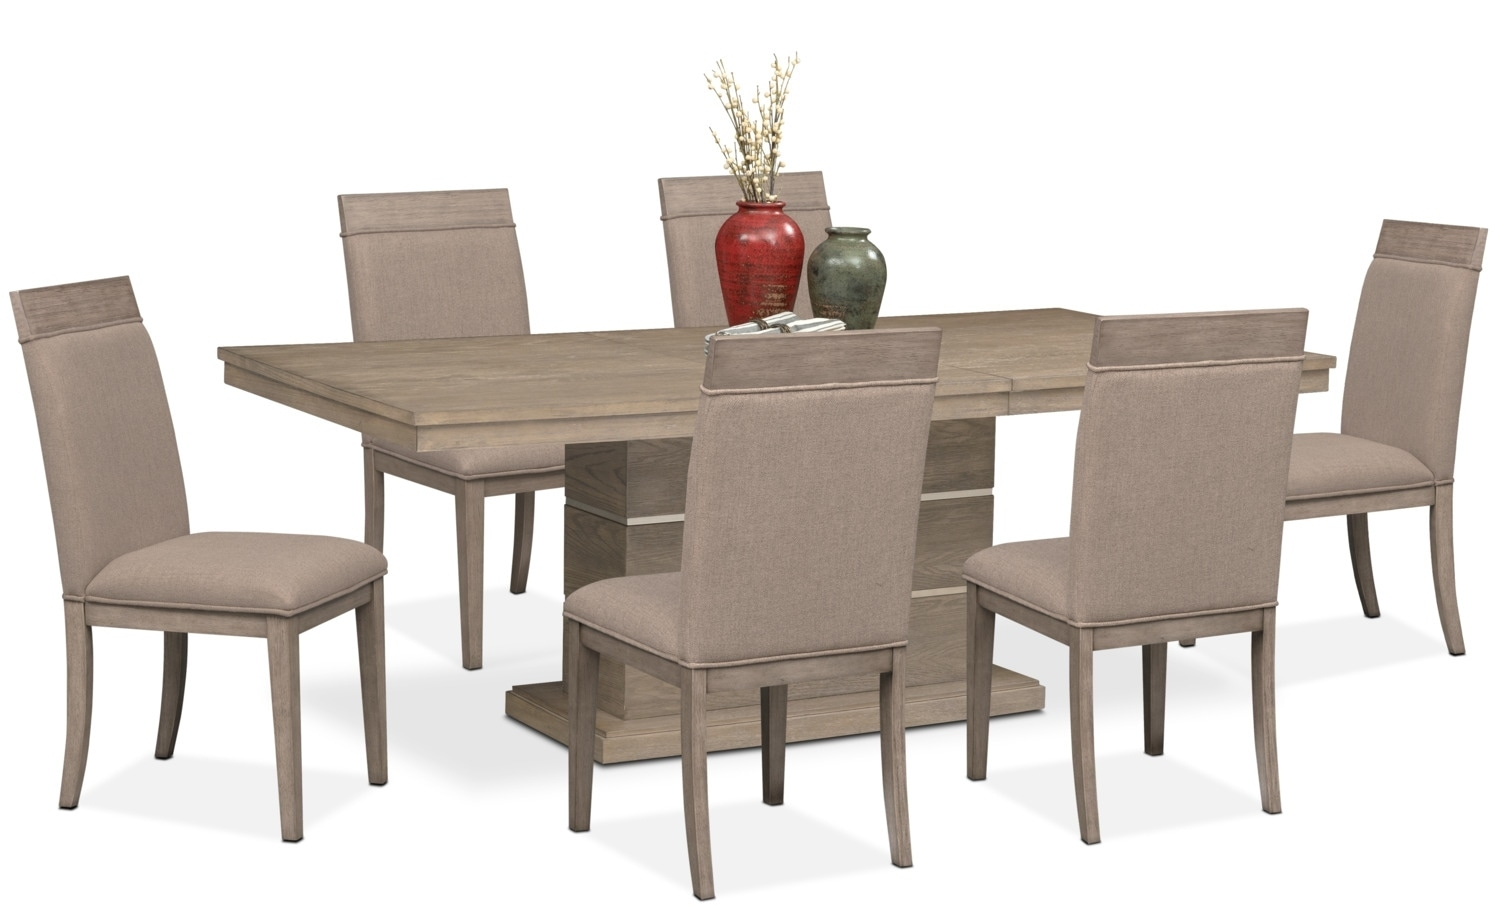 Gavin Pedestal Table And 6 Side Chairs – Graystone | American Intended For Newest Gavin 6 Piece Dining Sets With Clint Side Chairs (Image 7 of 20)